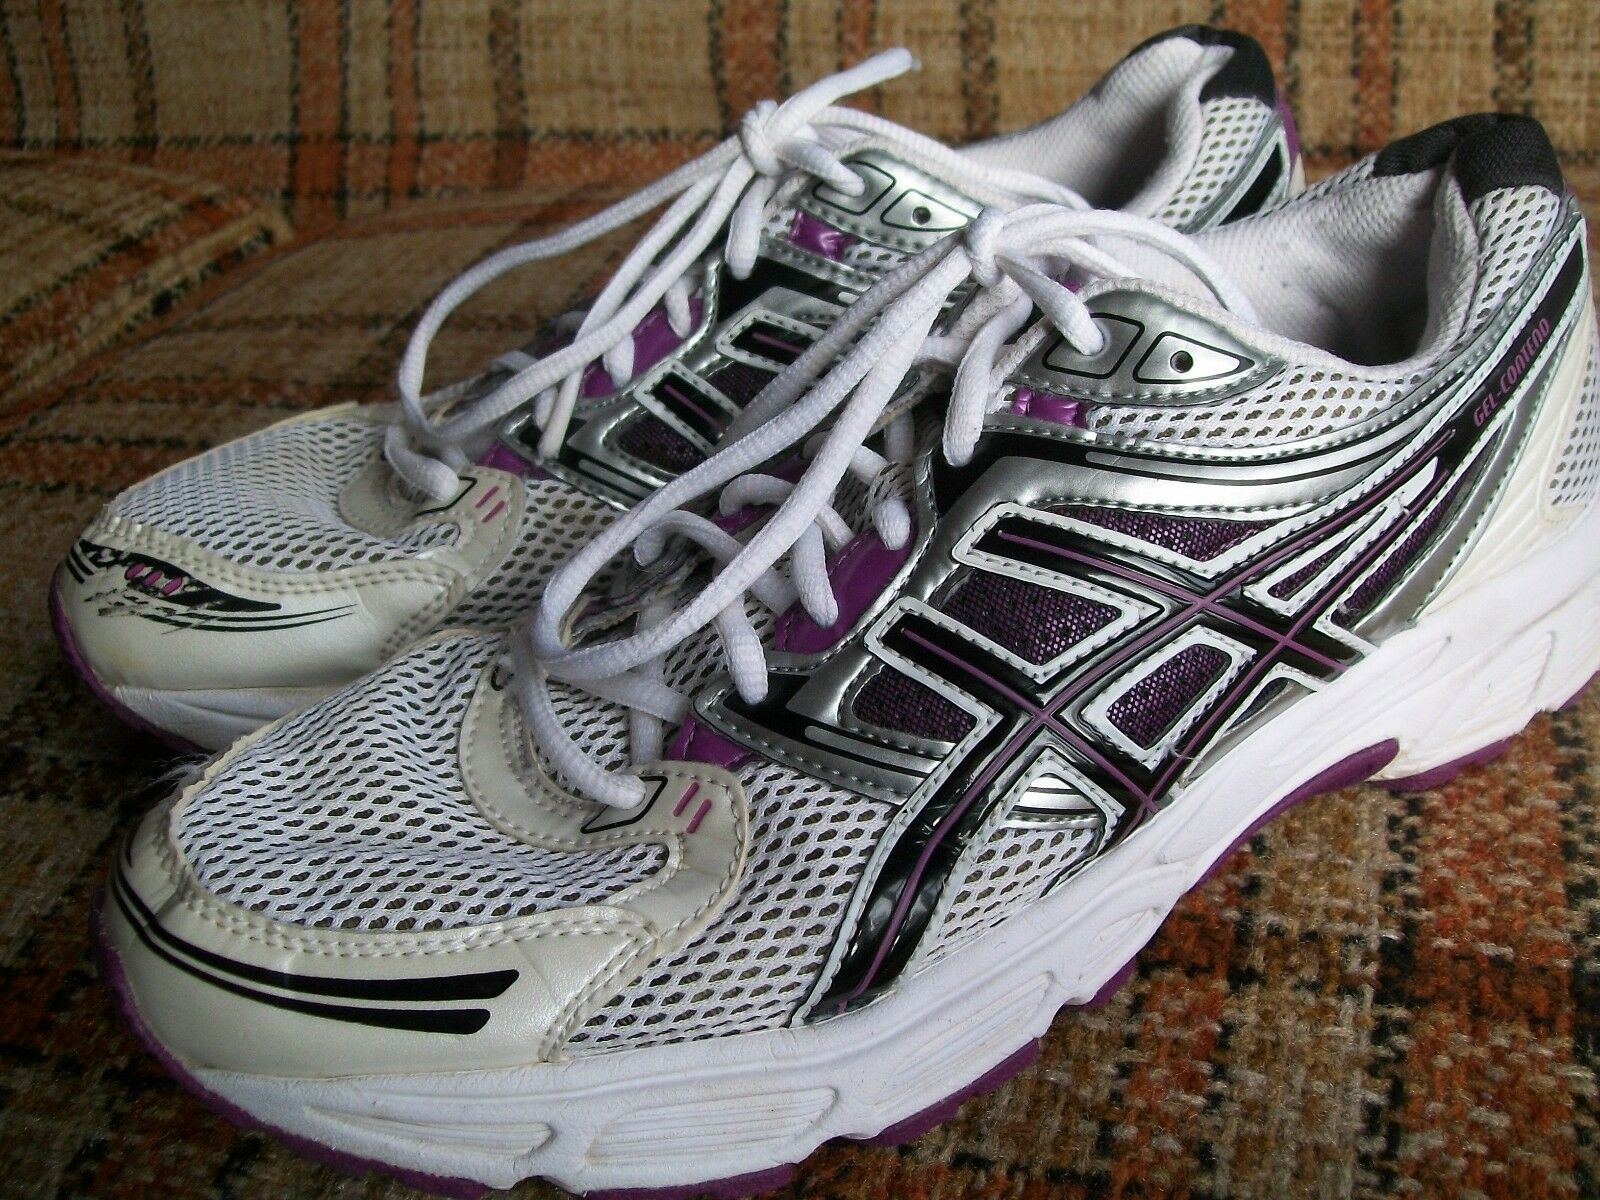 Asics Womens Size 11 (Euro 43.5) CM 27.5 Gel-Contend White Purple T2F9N